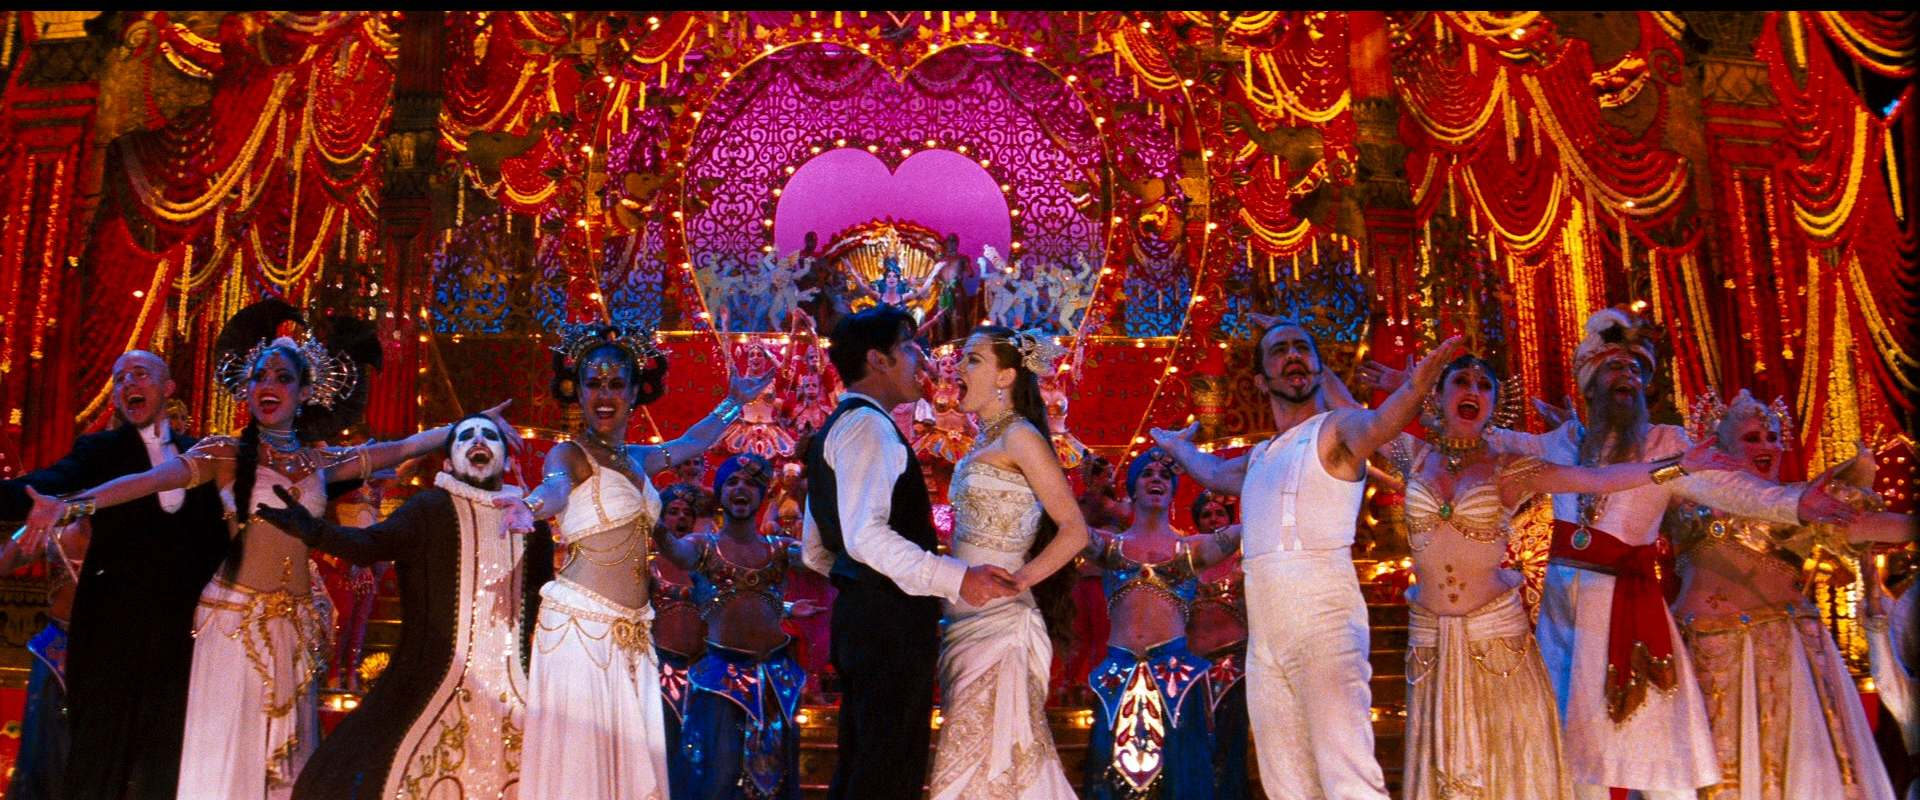 Moulin Rouge! background 2